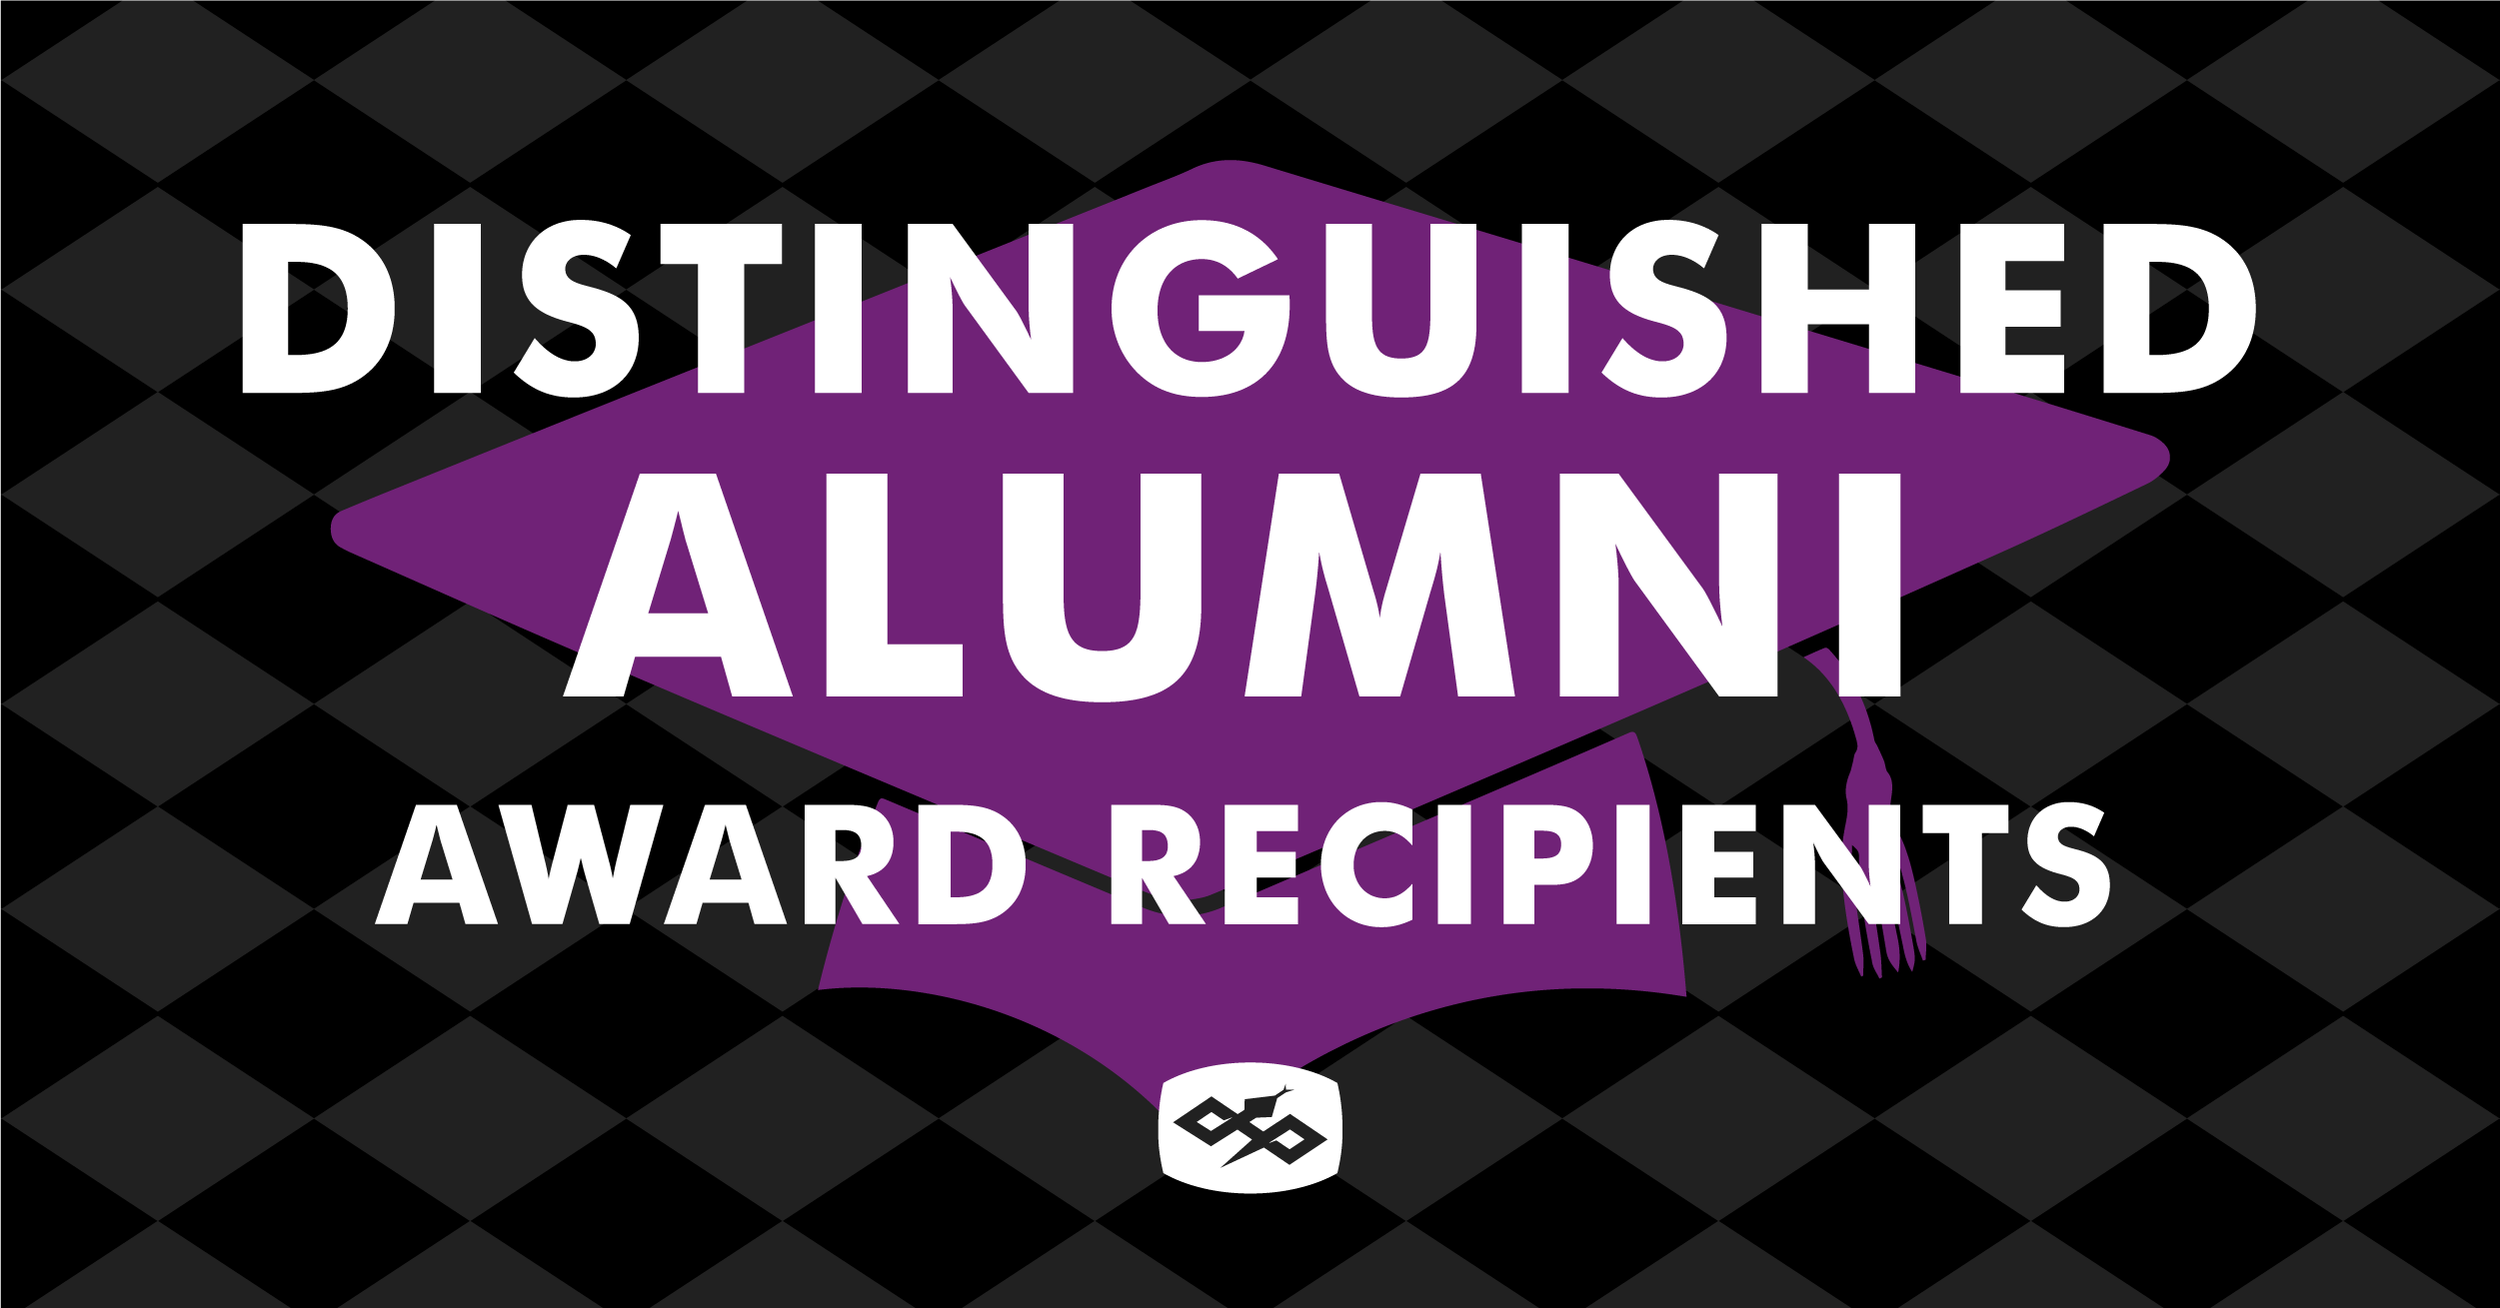 Click the banner to view all past Distinguished Alumni Award Recipients.